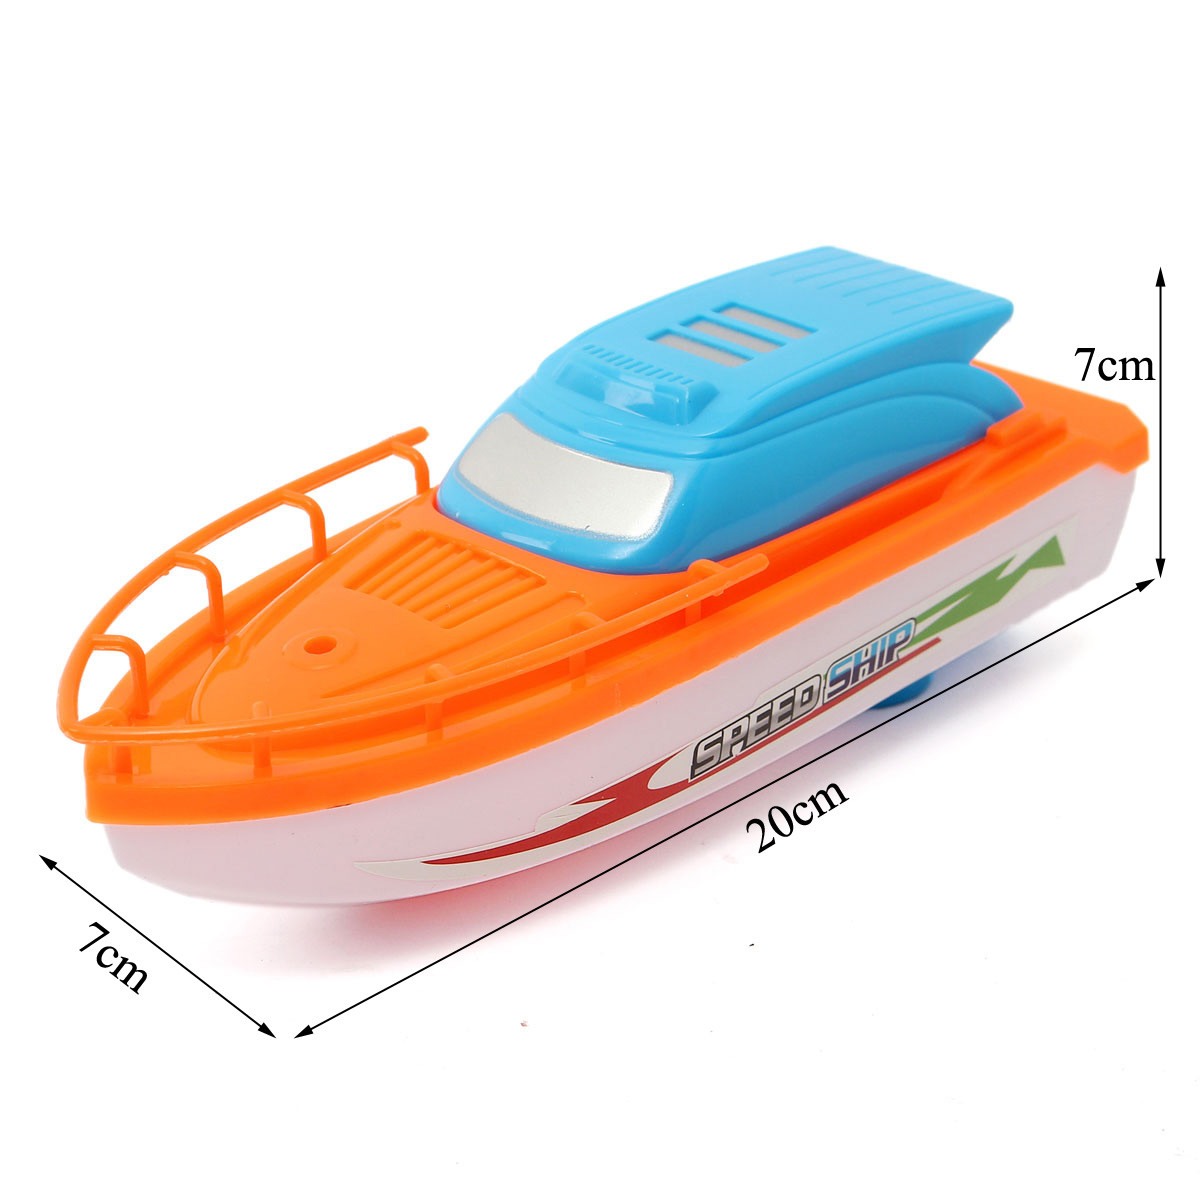 toy electric boats with 32667498598 on Manta5 Hydrofoiler Xe1 E Bike as well 2015 Polaris Slingshot Three Wheels And A Prayer additionally Taigen Hand Painted Rc Tanks Metal Upgrade Panther 24ghz 4766 P additionally Attachment also Zego Sports Boat Big Boys Toy.